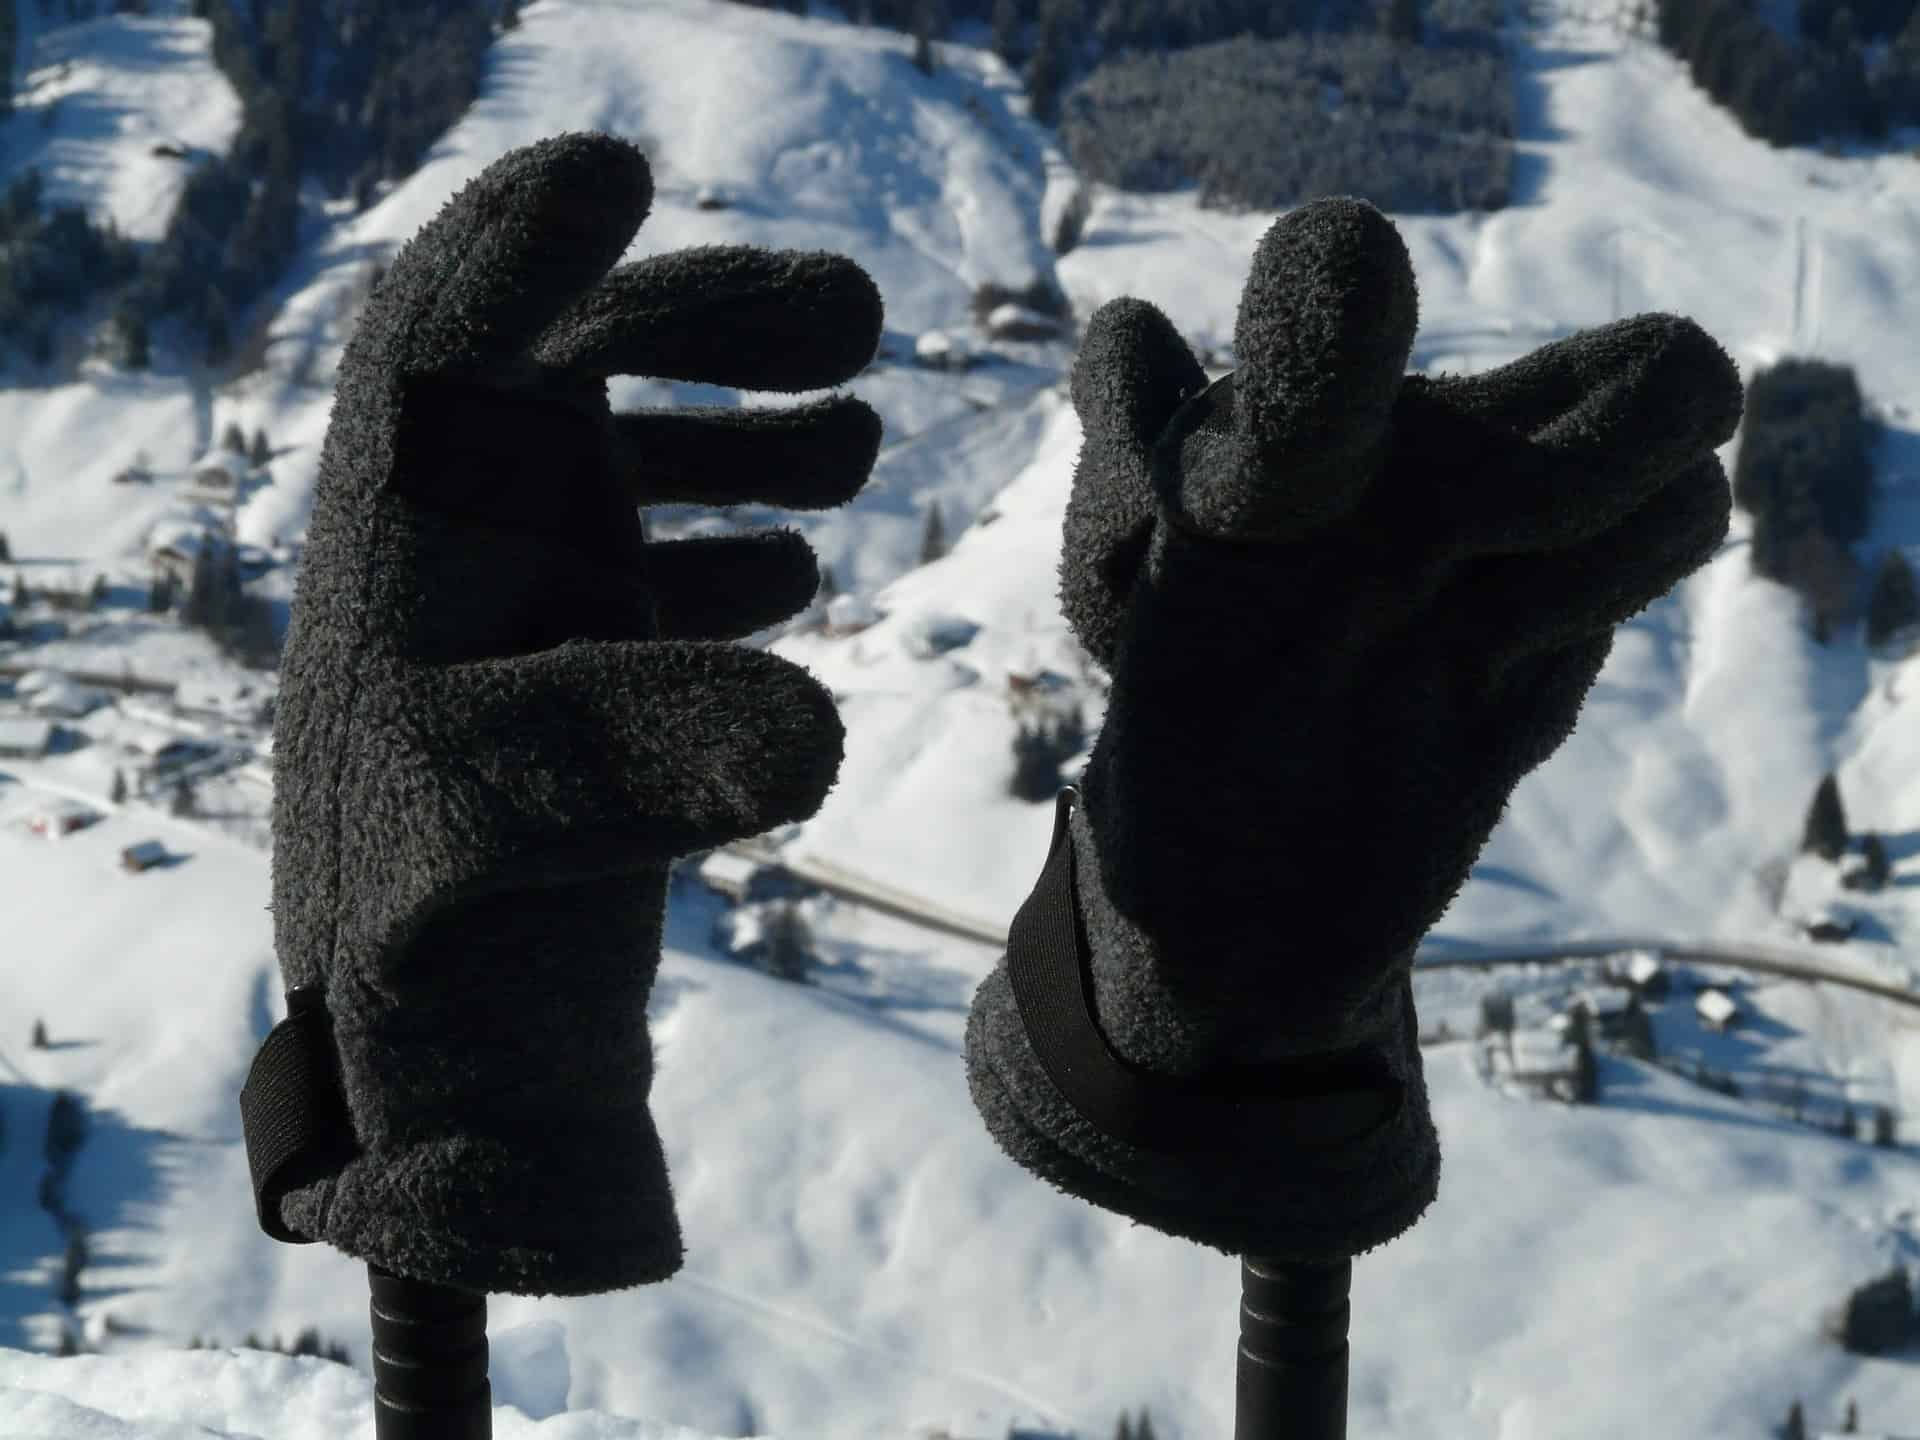 Ski gloves on pole